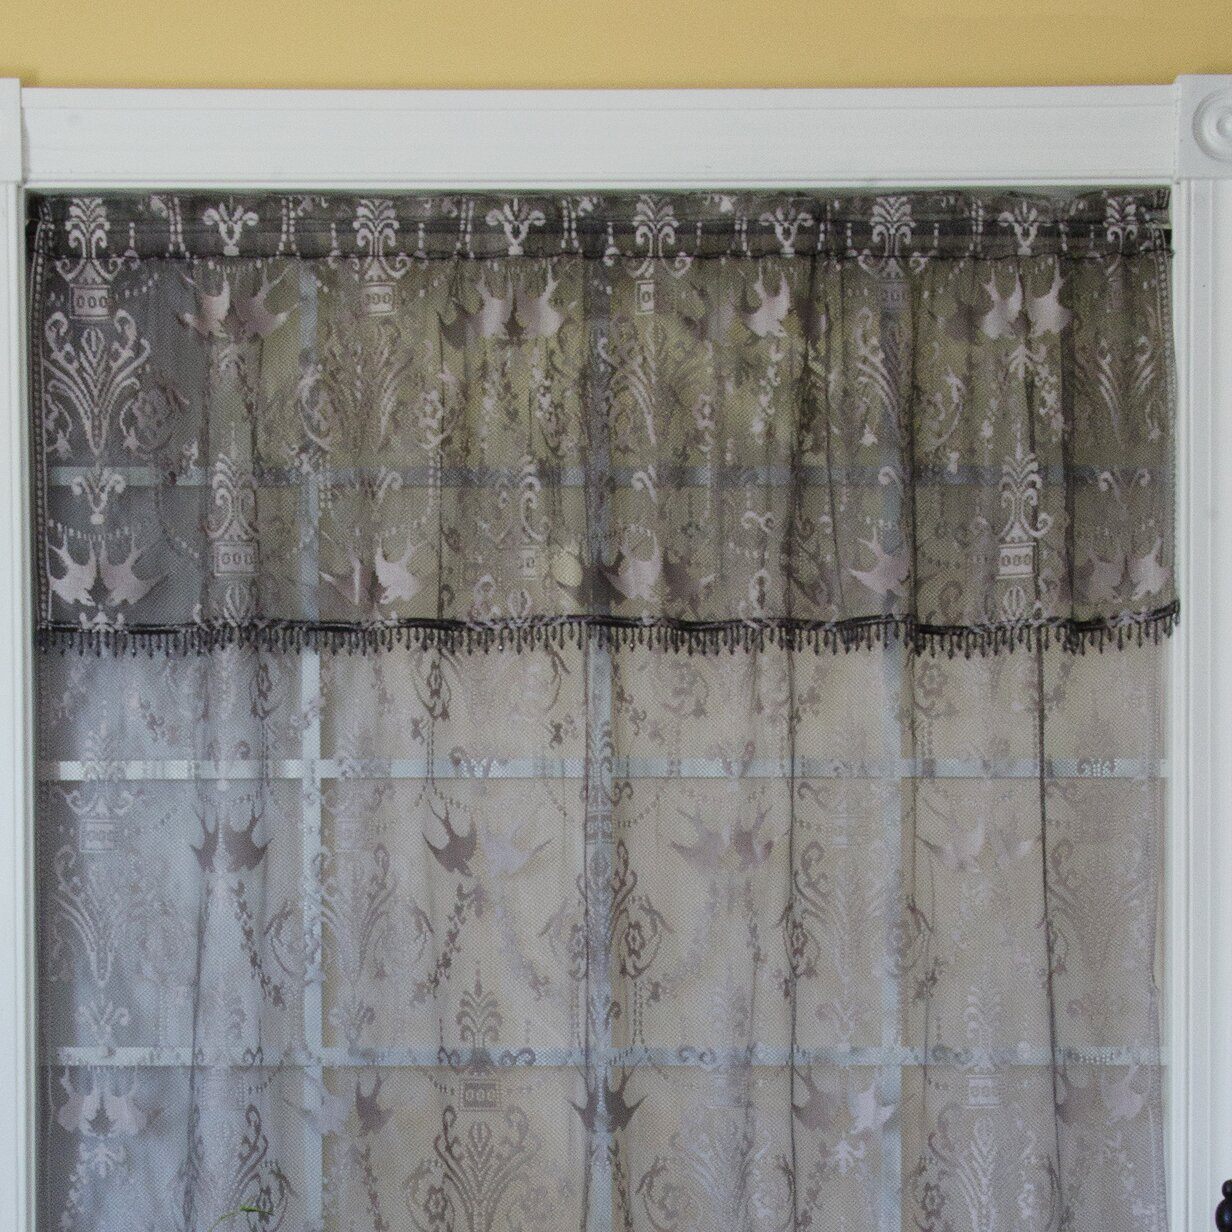 Heritage Lace Duchess Curtain Valance Amp Reviews Wayfair